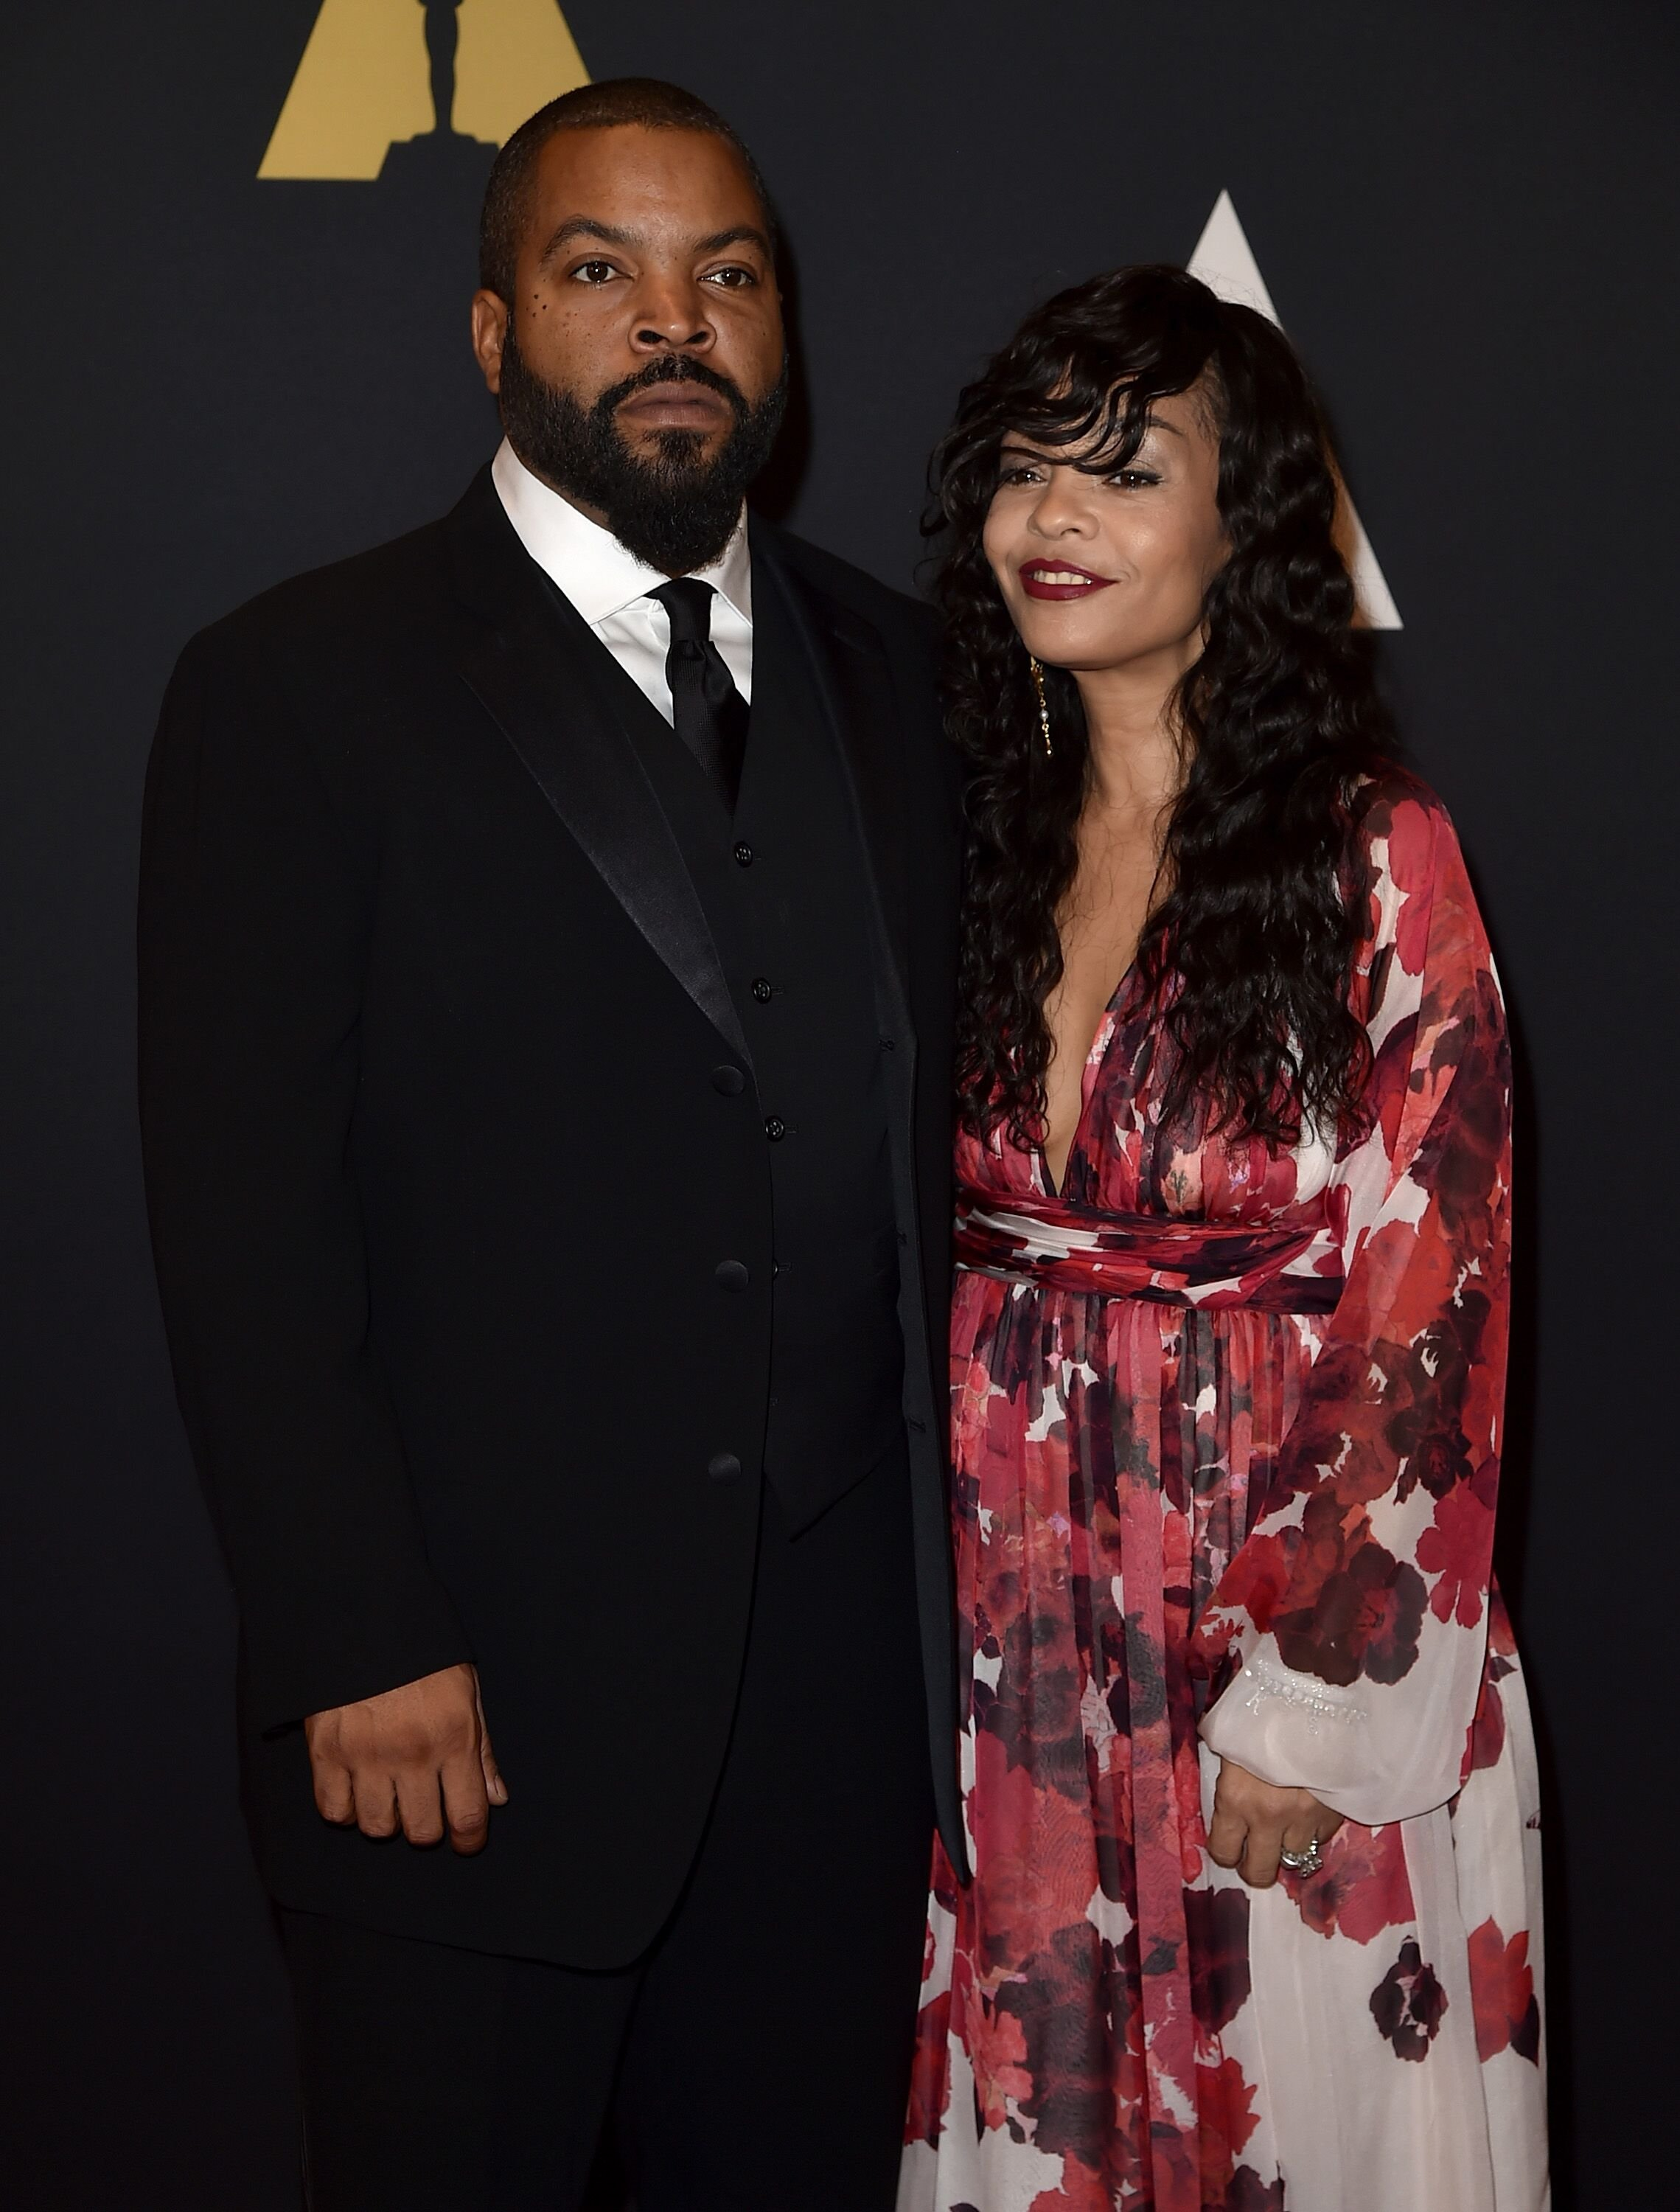 Ice Cube and Kimberly Woodruff at the Academy of Motion Picture Arts and Sciences' 7th annual Governors Awards in 2015 | Source: Getty Images